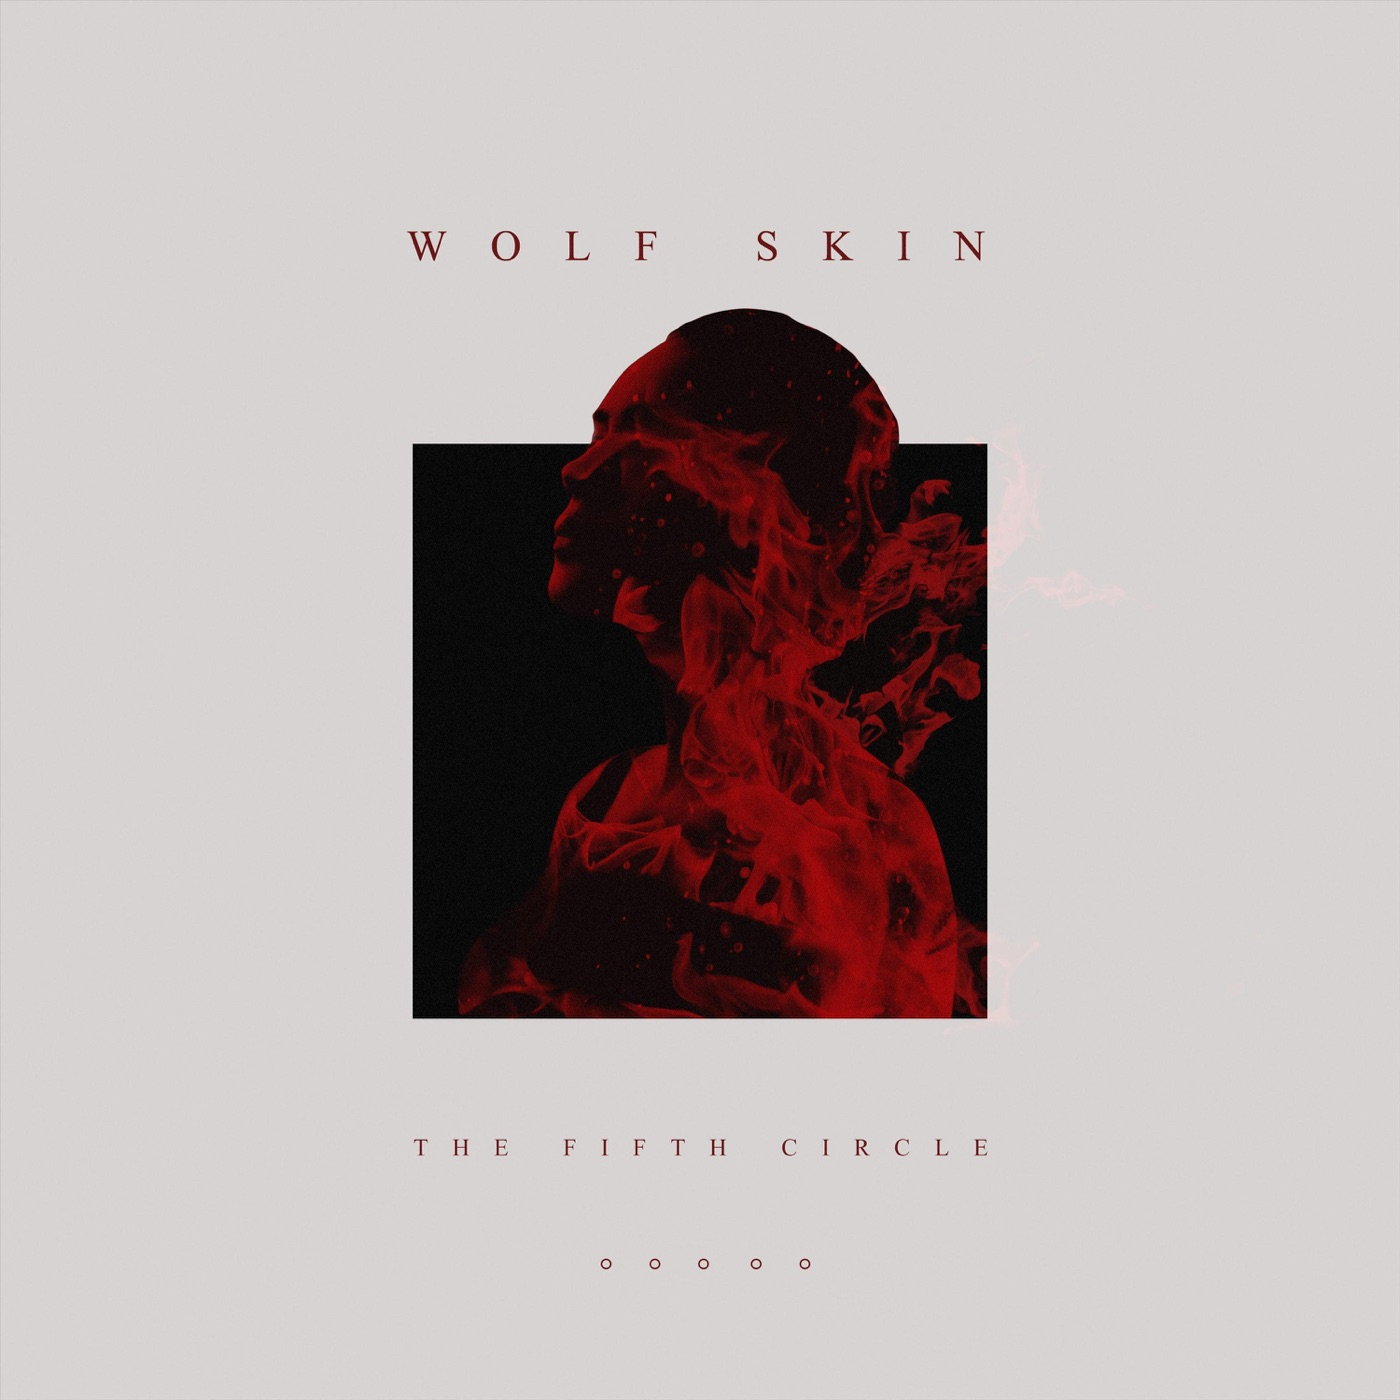 Wolf Skin - The Fifth Circle (2018)